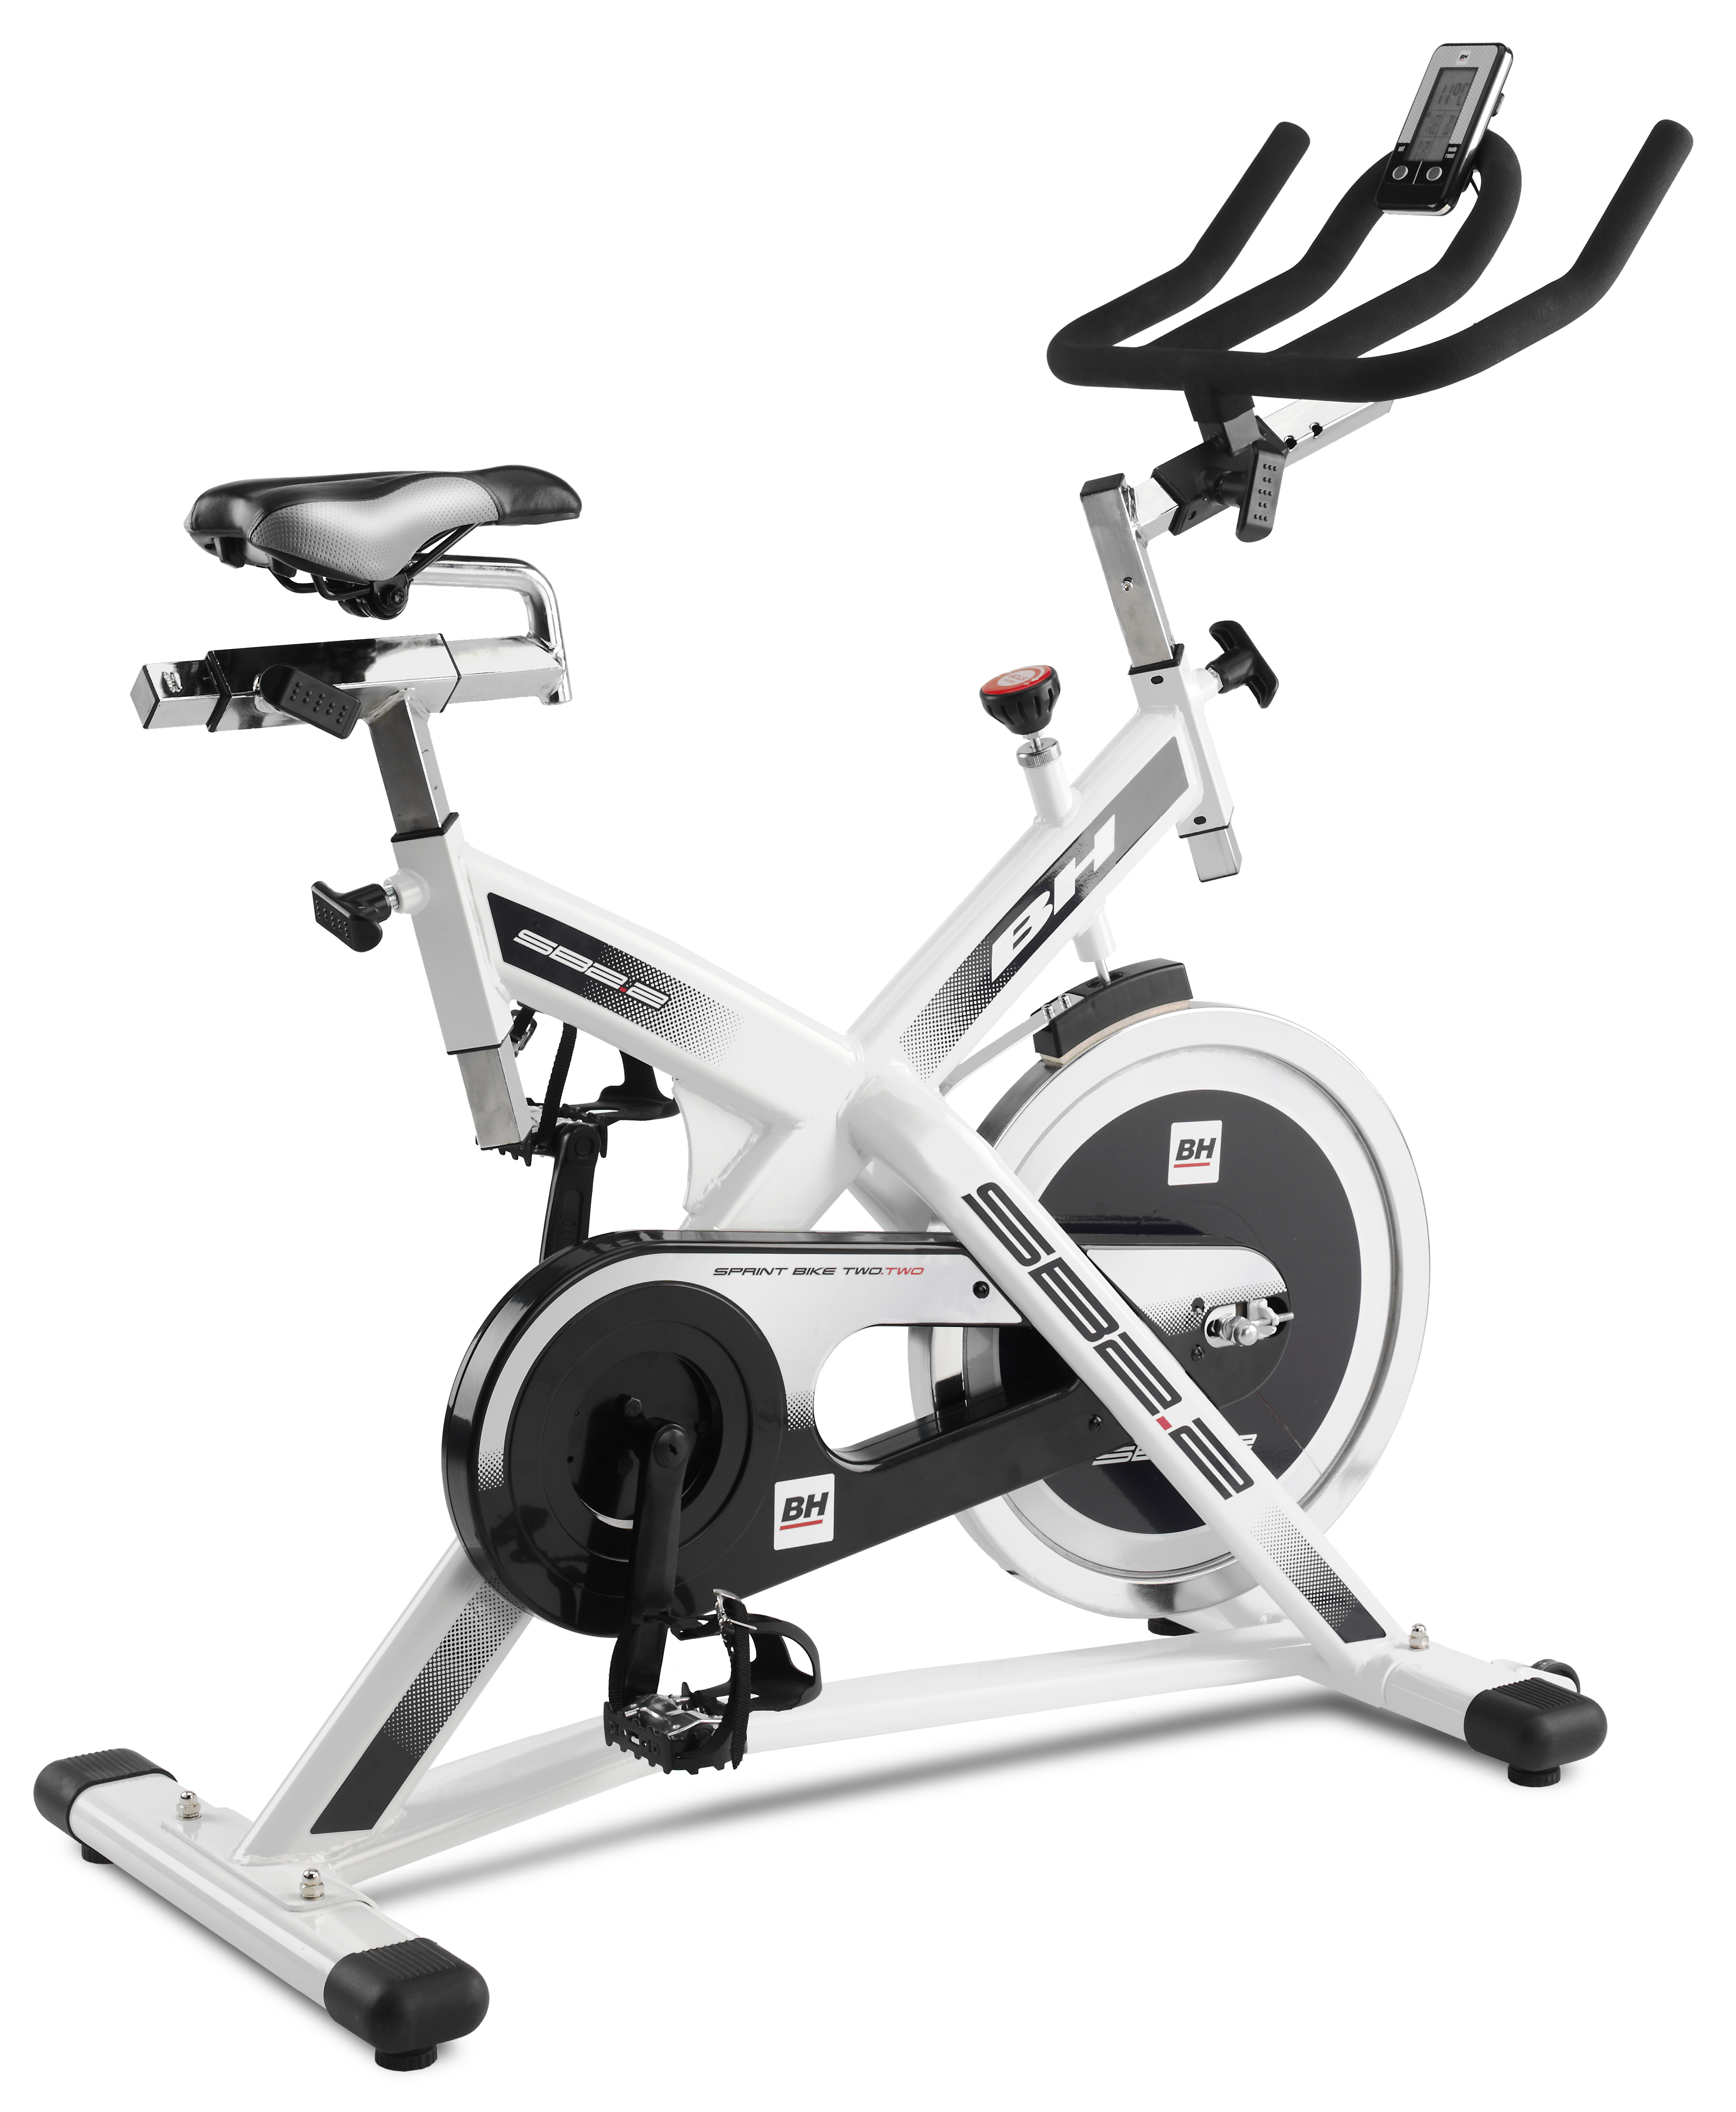 BH Fitness SB2.2 Indoor Cycle H9162